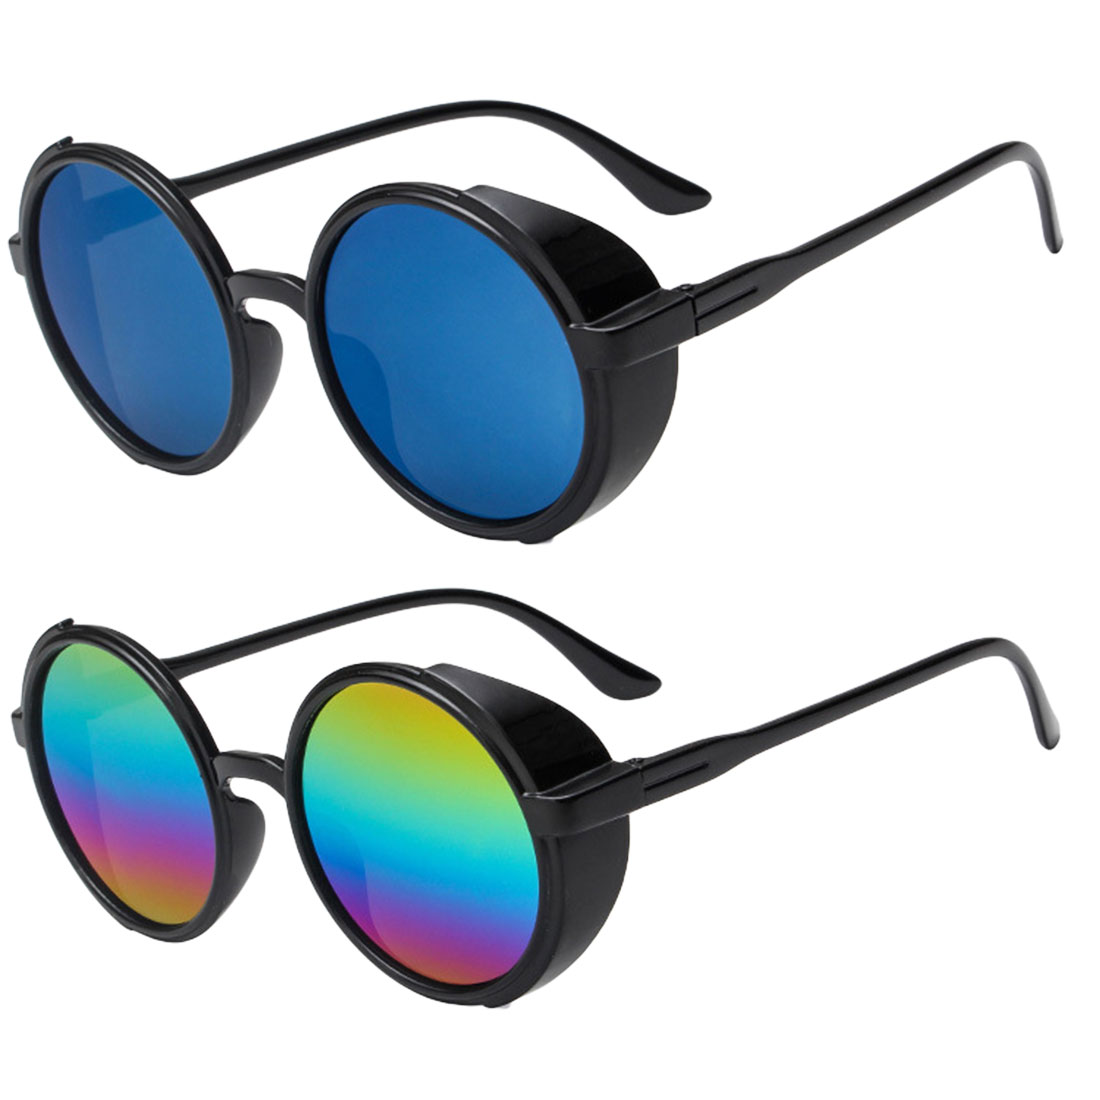 metal round steampunk sunglasses men women fashion summer 2019 pink blue yellow red round sun glasses for women unisex in Men 39 s Sunglasses from Apparel Accessories